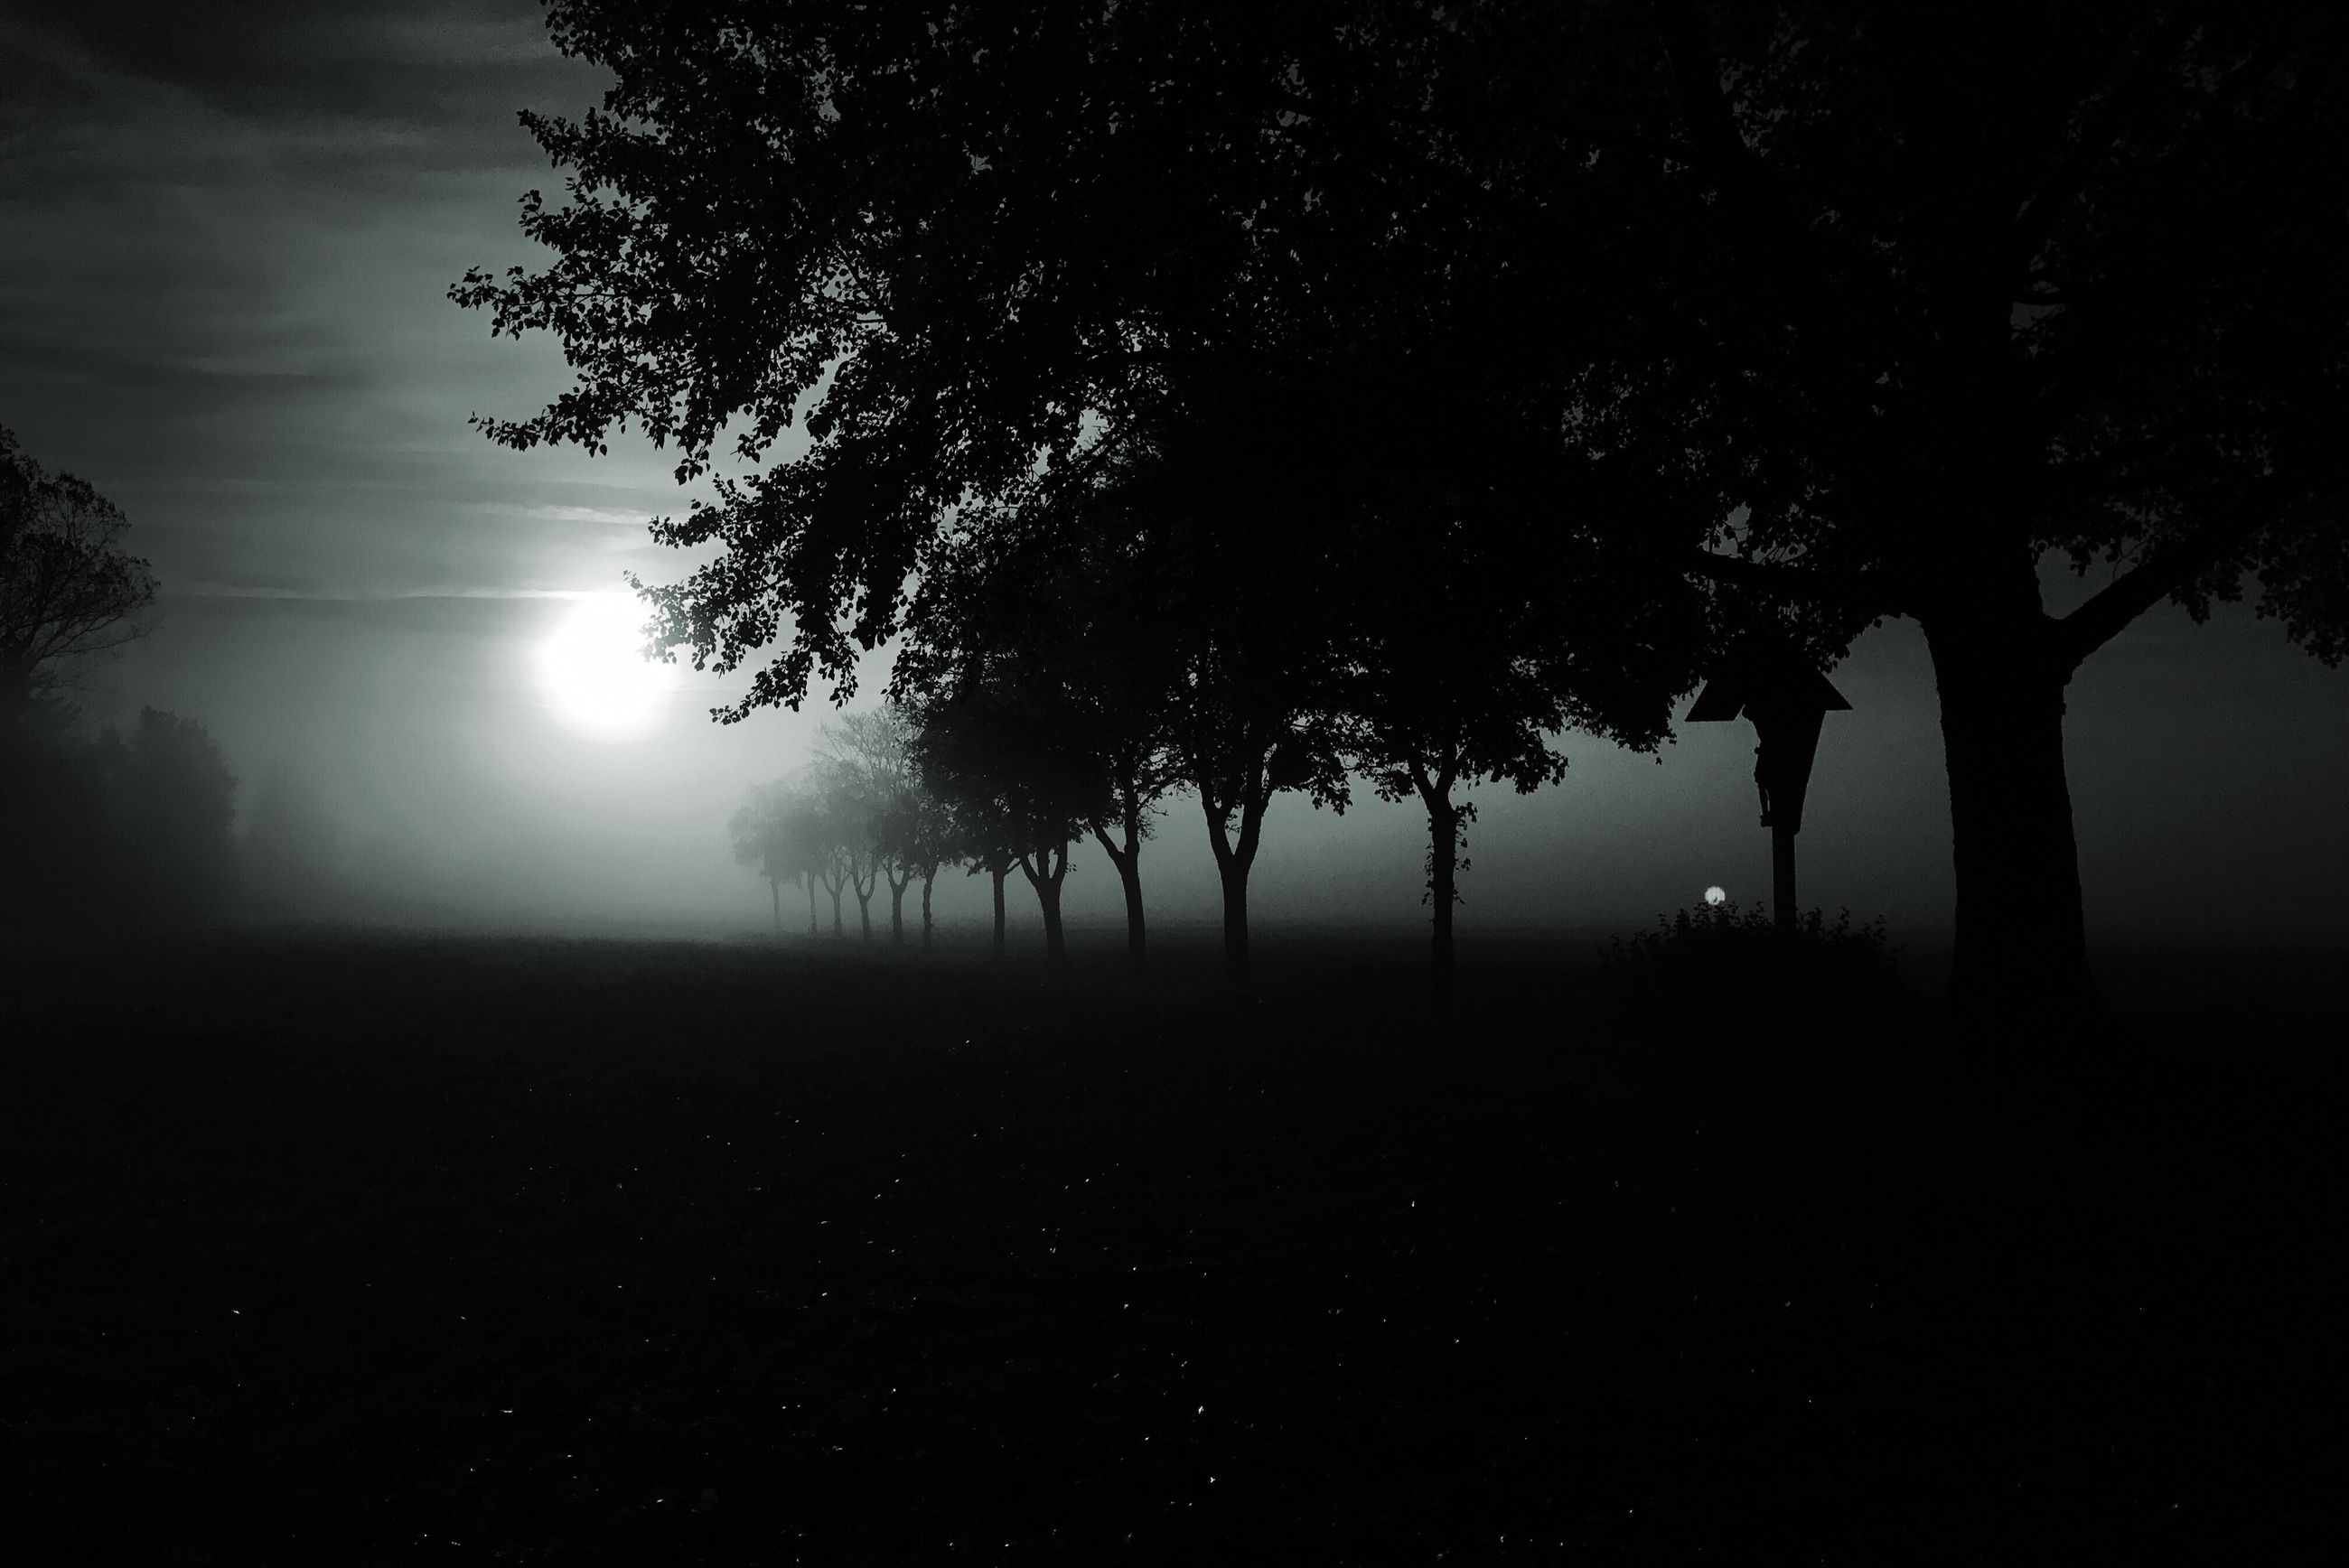 tree, nature, tranquility, tranquil scene, silhouette, beauty in nature, scenics, fog, idyllic, landscape, no people, sun, outdoors, sky, sunset, hazy, day